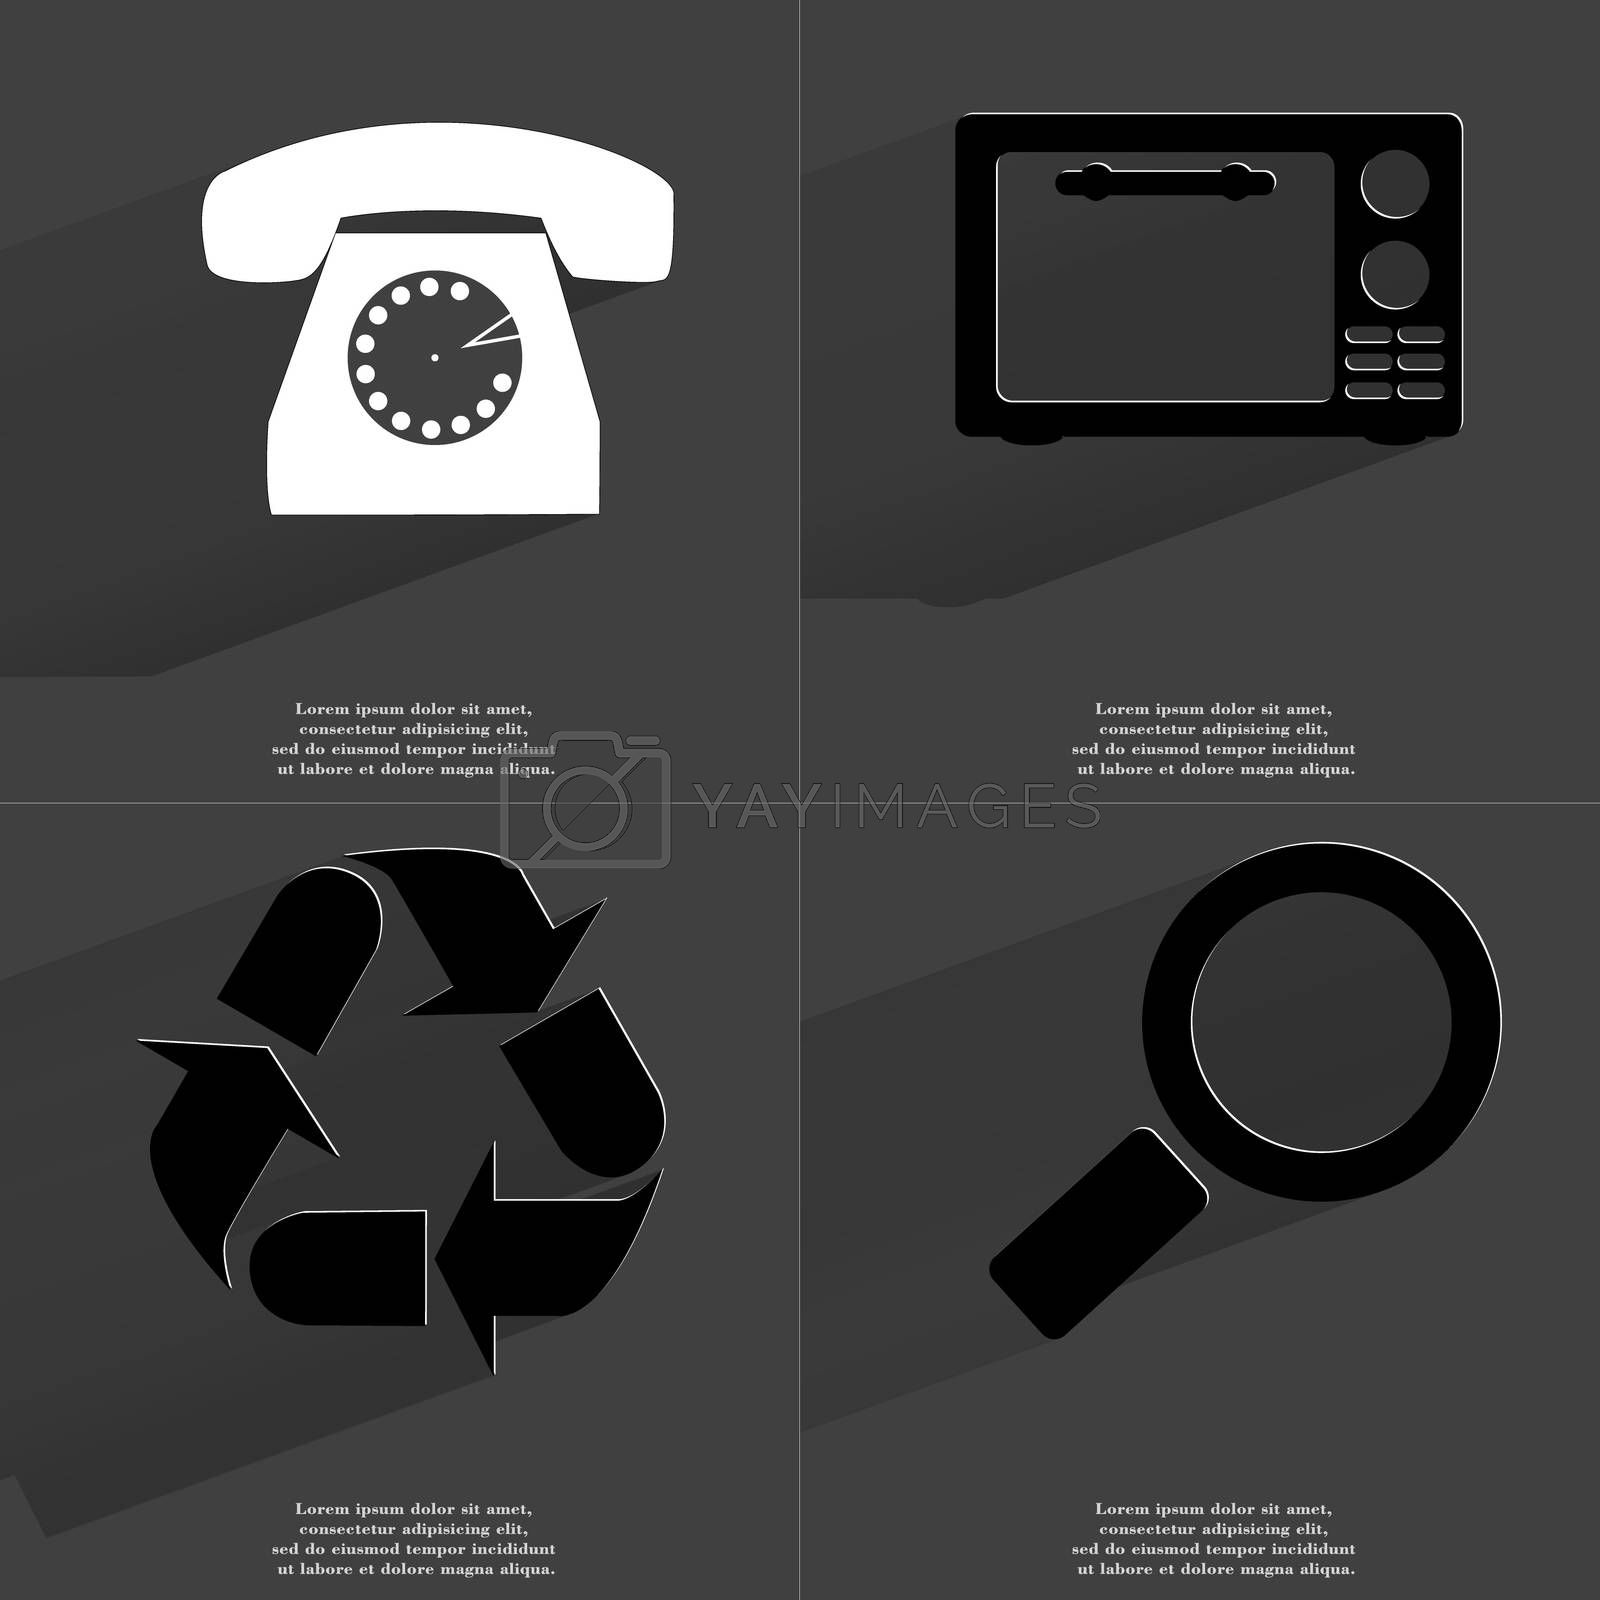 Royalty free image of Retro phone, Microwave, Recycling, Magnifying glass. Symbols with long shadow. Flat design by serhii_lohvyniuk